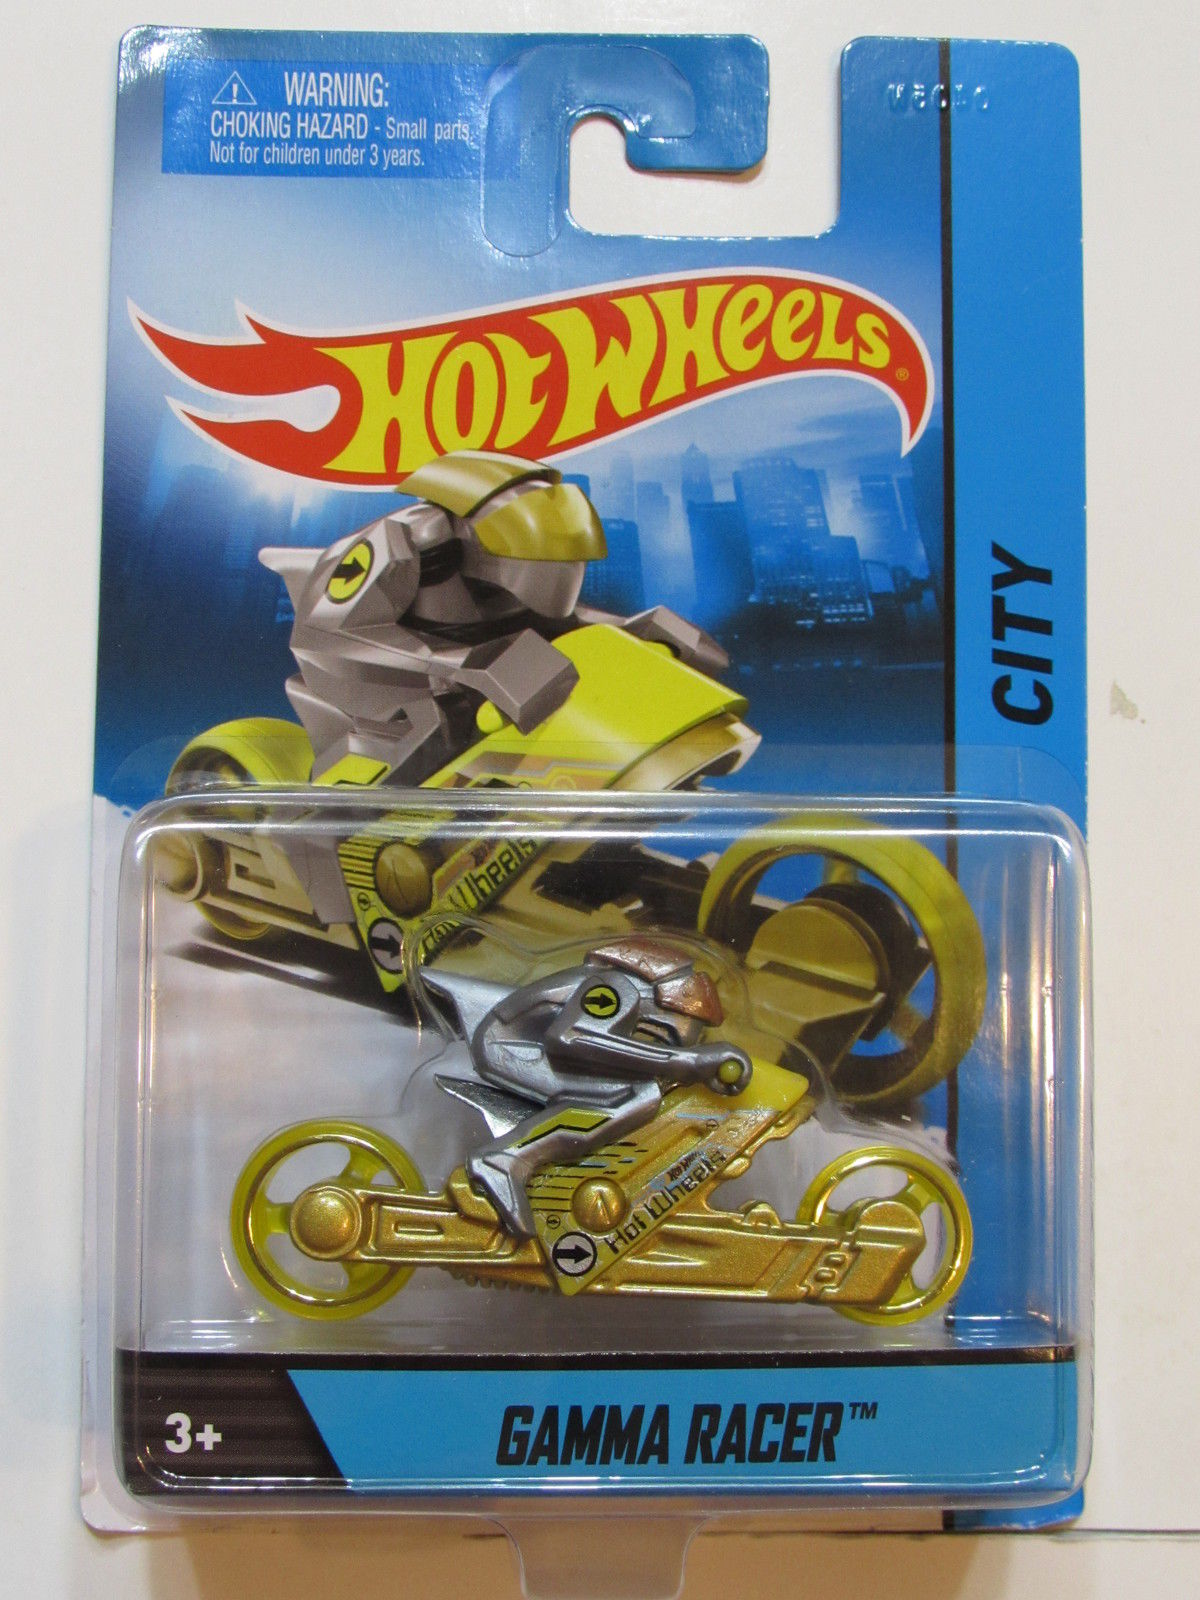 HOT WHEELS 2013 1:64 SCALE CITY - GAMMA RACER YELLOW